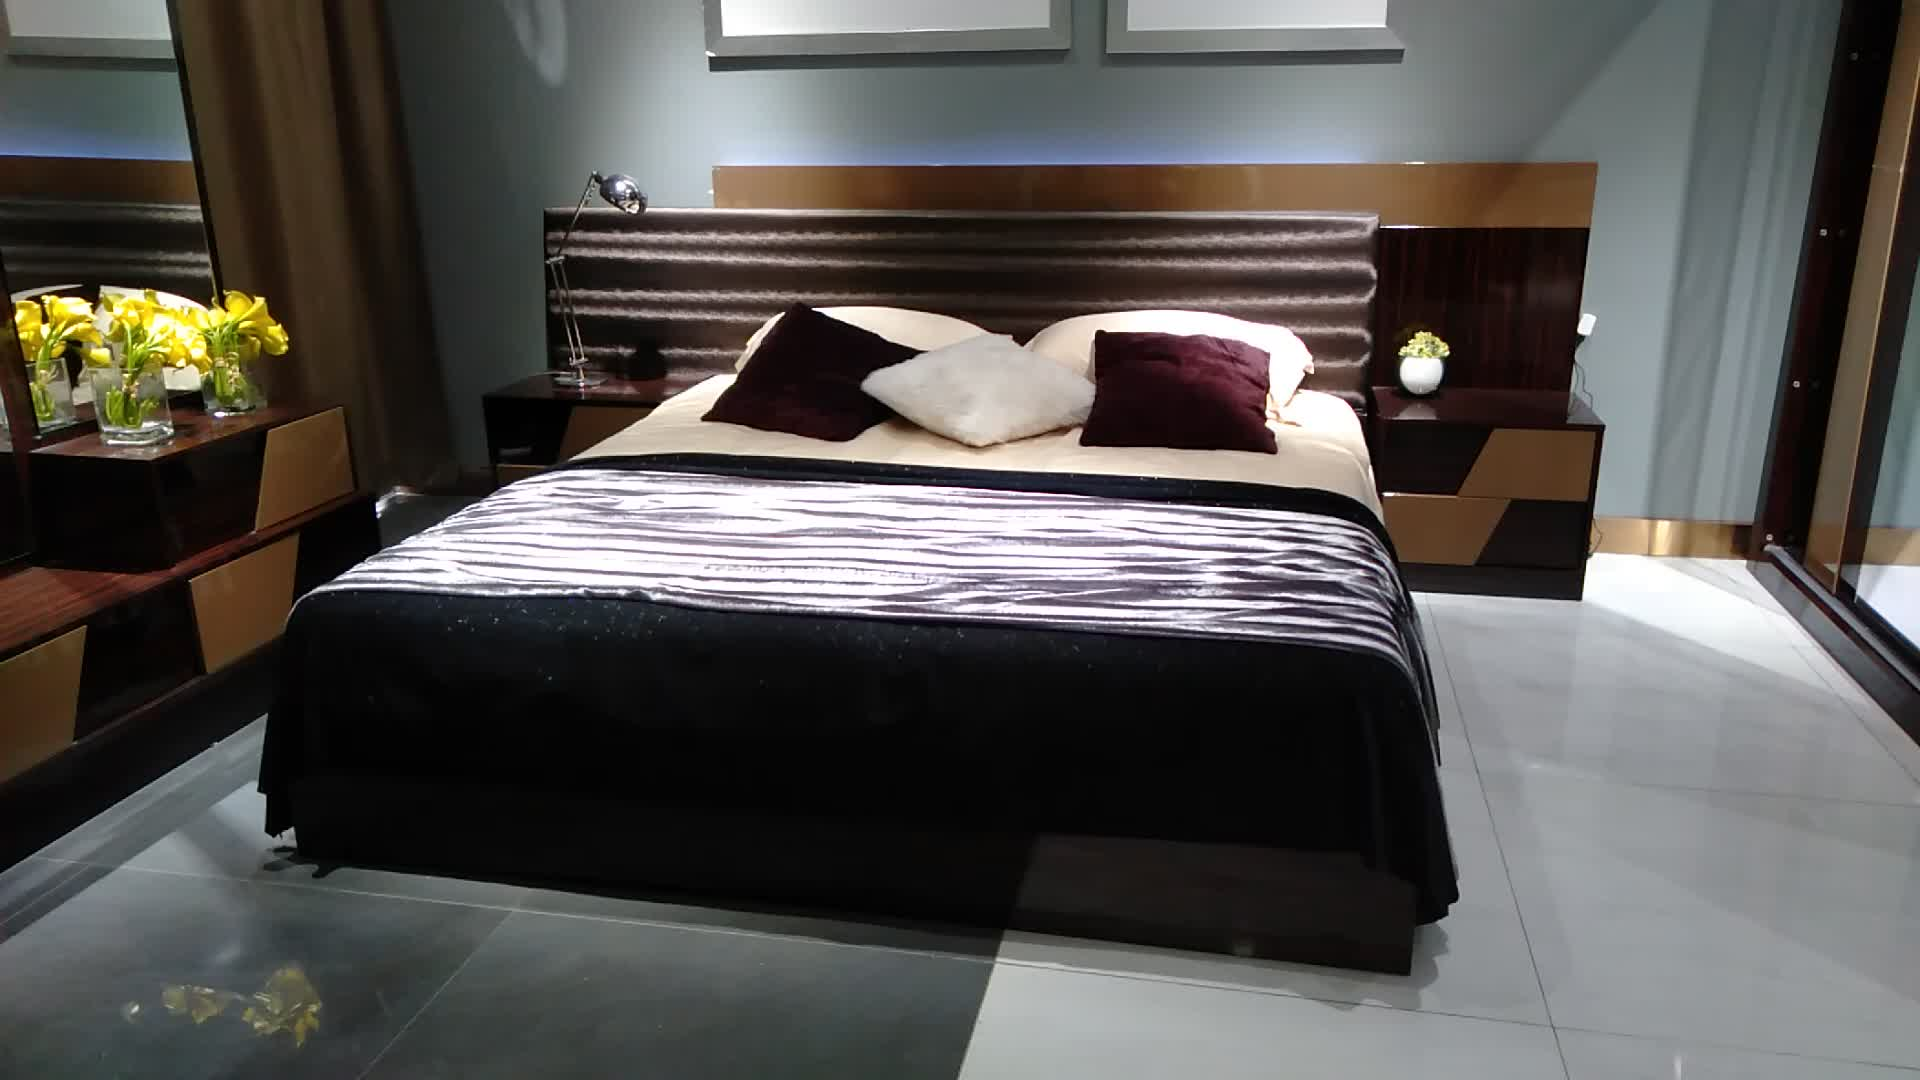 Boy8 Hot Sale Used Bedroom Furniture For Sale - Buy High Quality